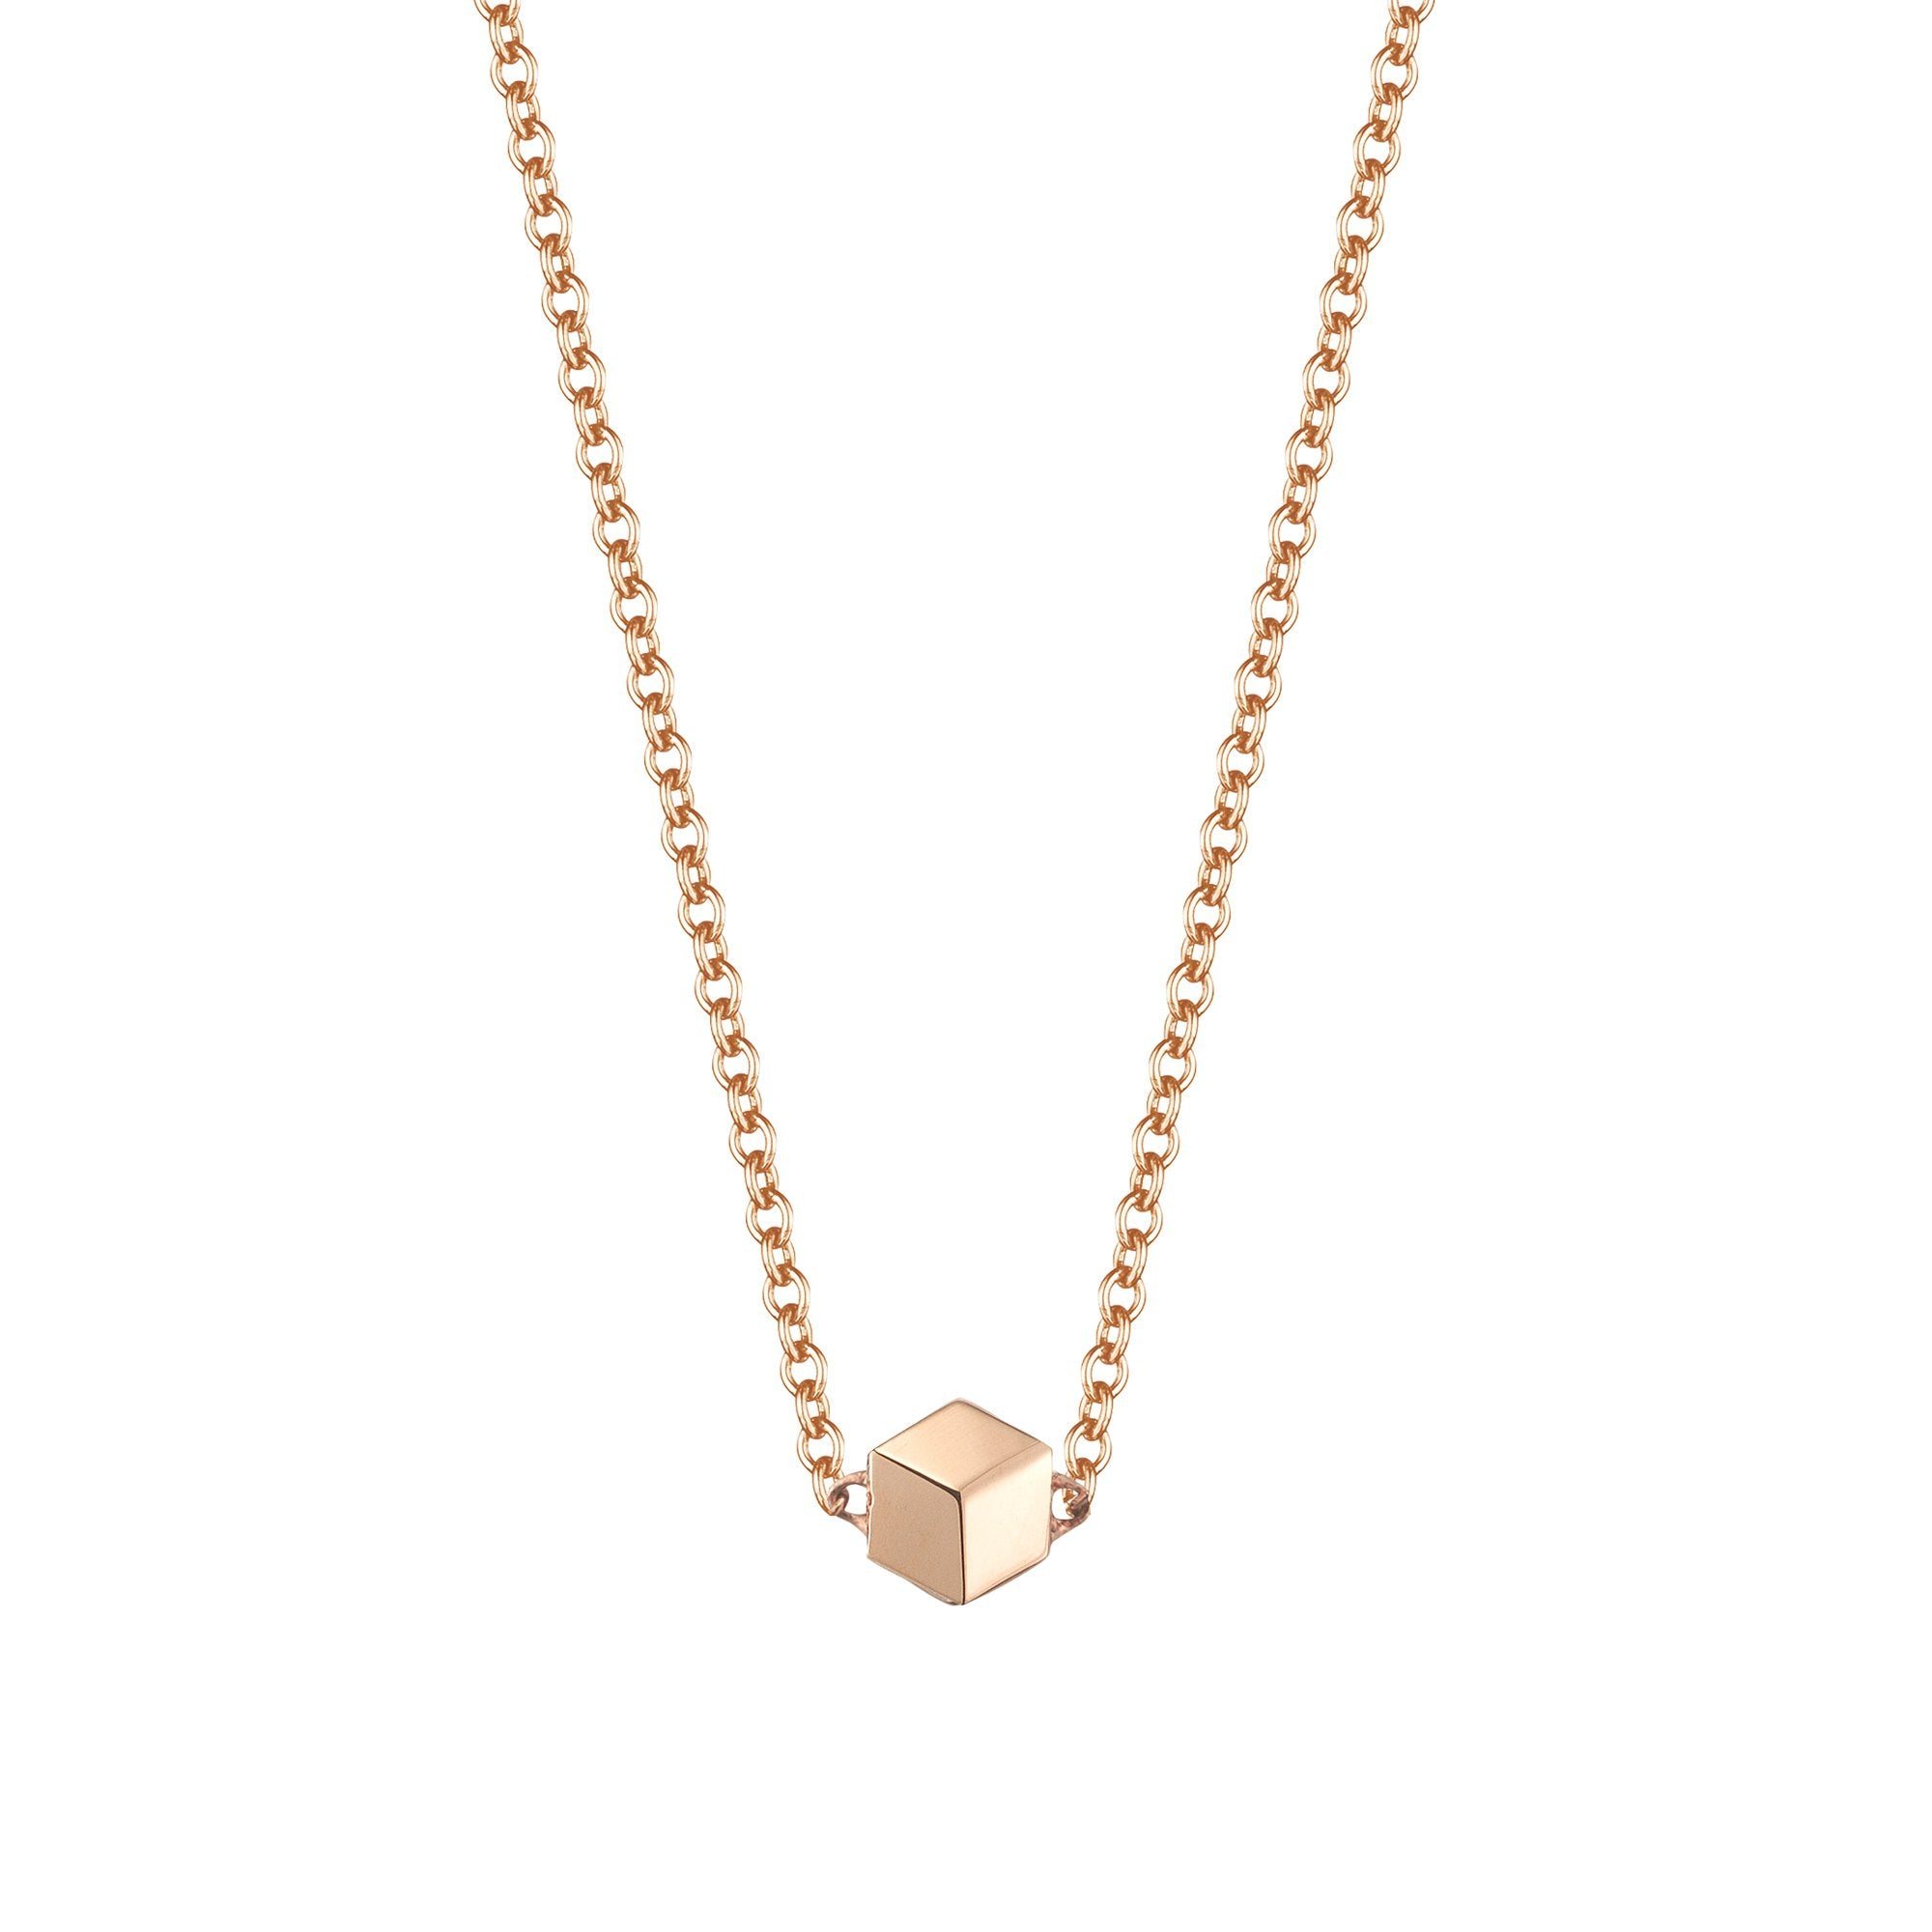 Buy 18kt Custom Rose Gold Necklace Design For Women Paolo Costagli